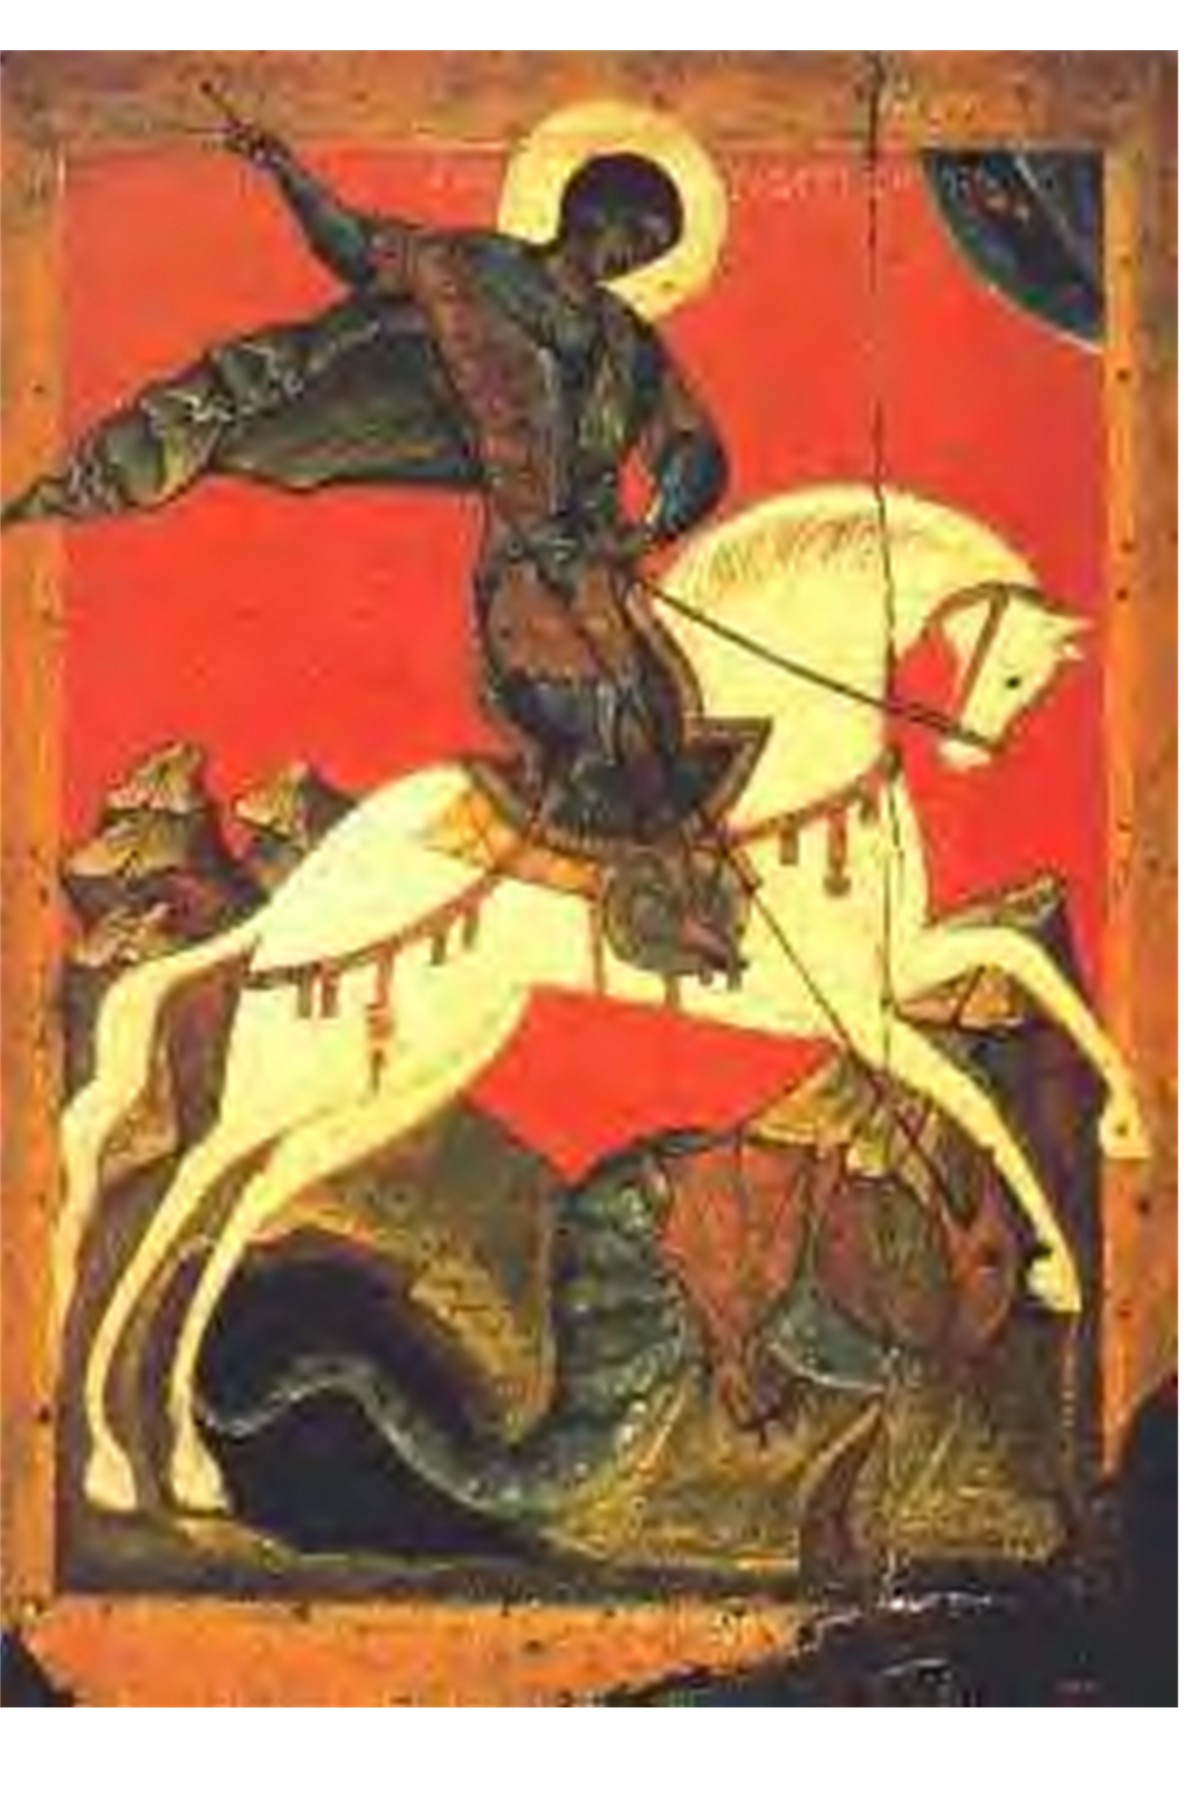 st george slaying the dragon St george the dragon slayer is one of medieval europe's greatest legends and represents the victory of good over evil  discover the origins of this famous legend.